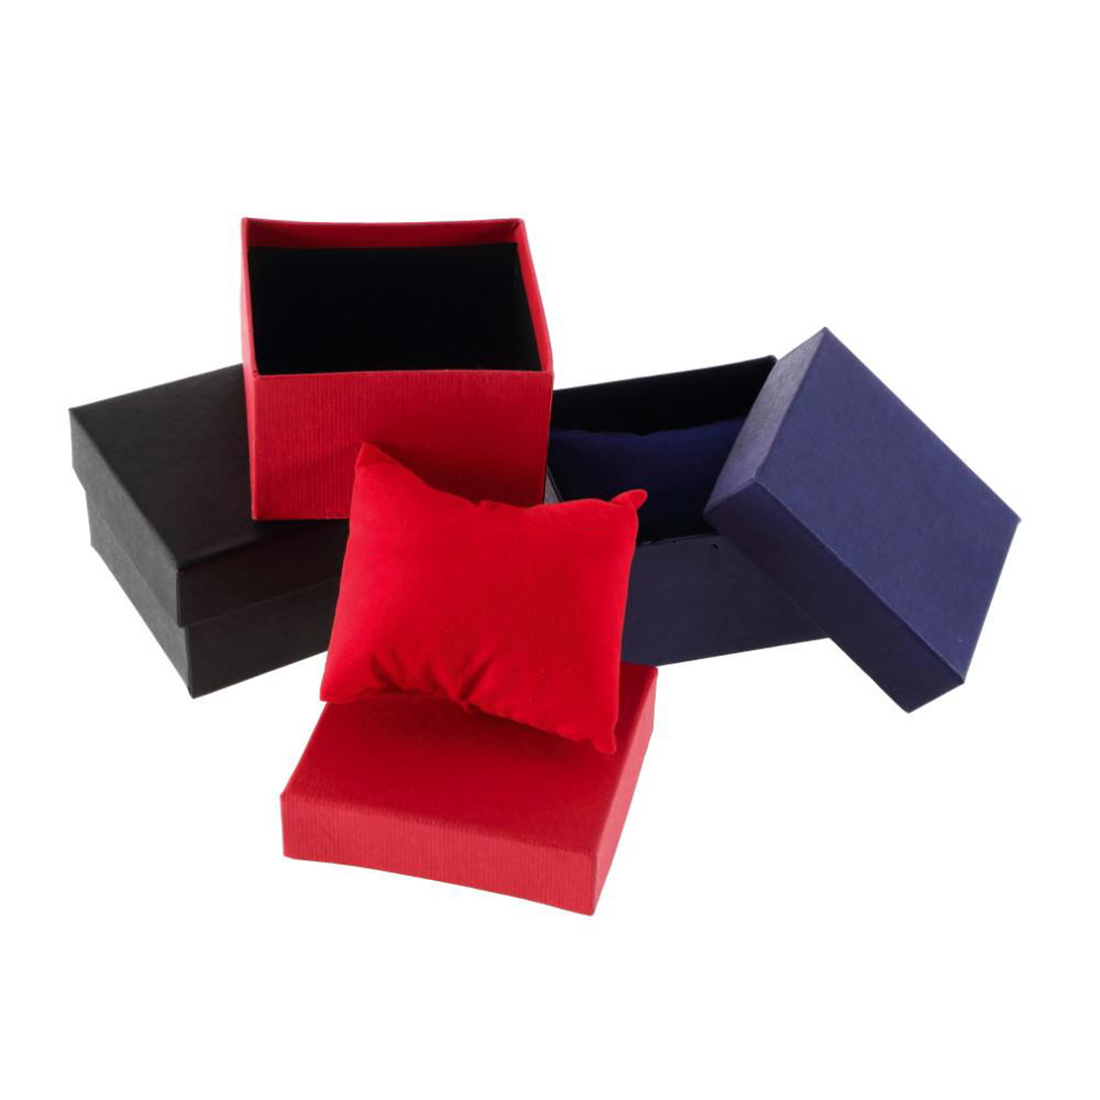 Big Sale Practical Jewelry Box Gift Boxes for Bracelet Earrings Watch Case with Foam Pad